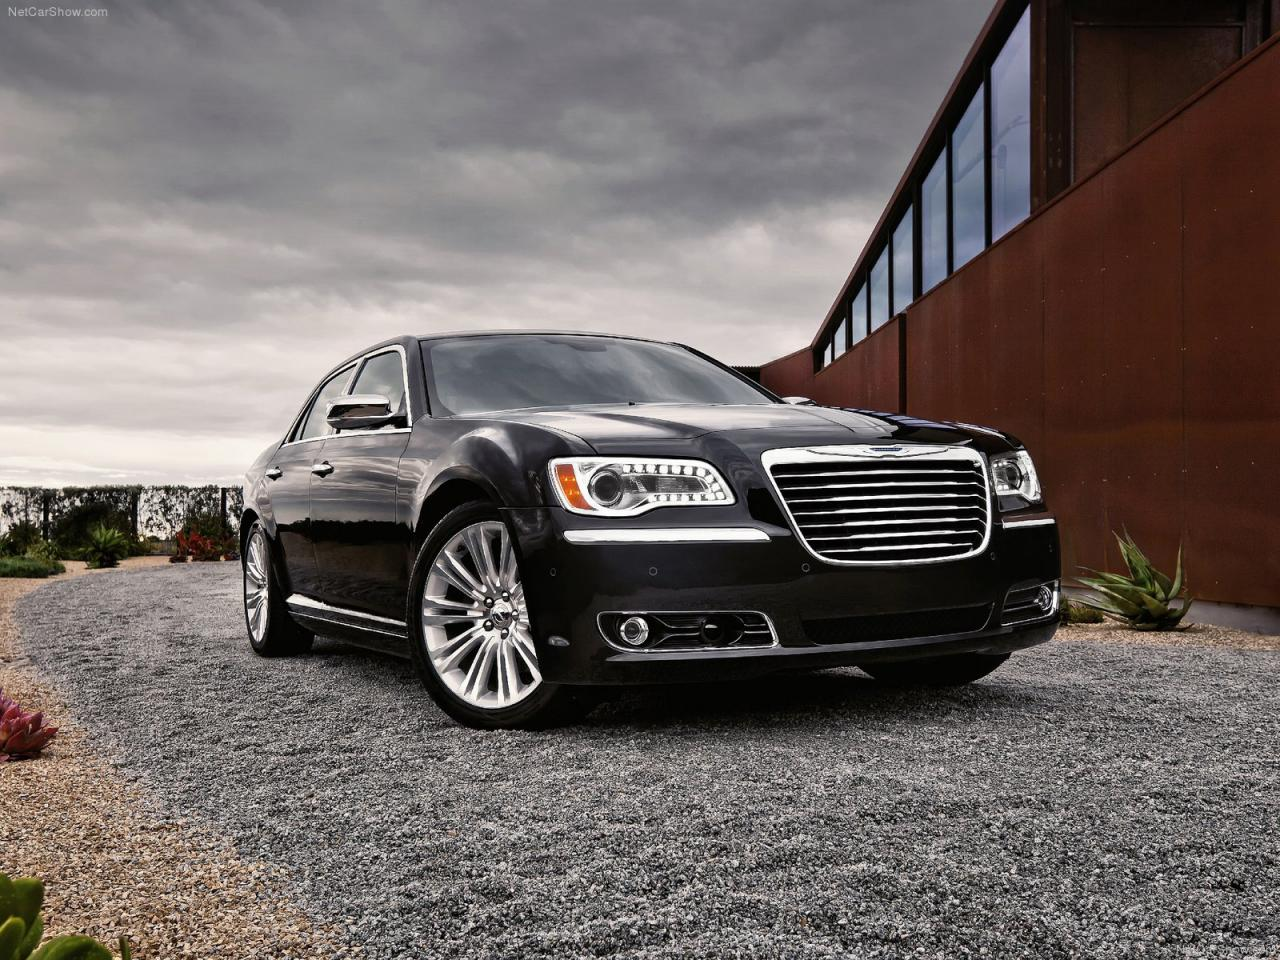 2011 chrysler 300 300c ii 2011chrysler 300 01. Black Bedroom Furniture Sets. Home Design Ideas